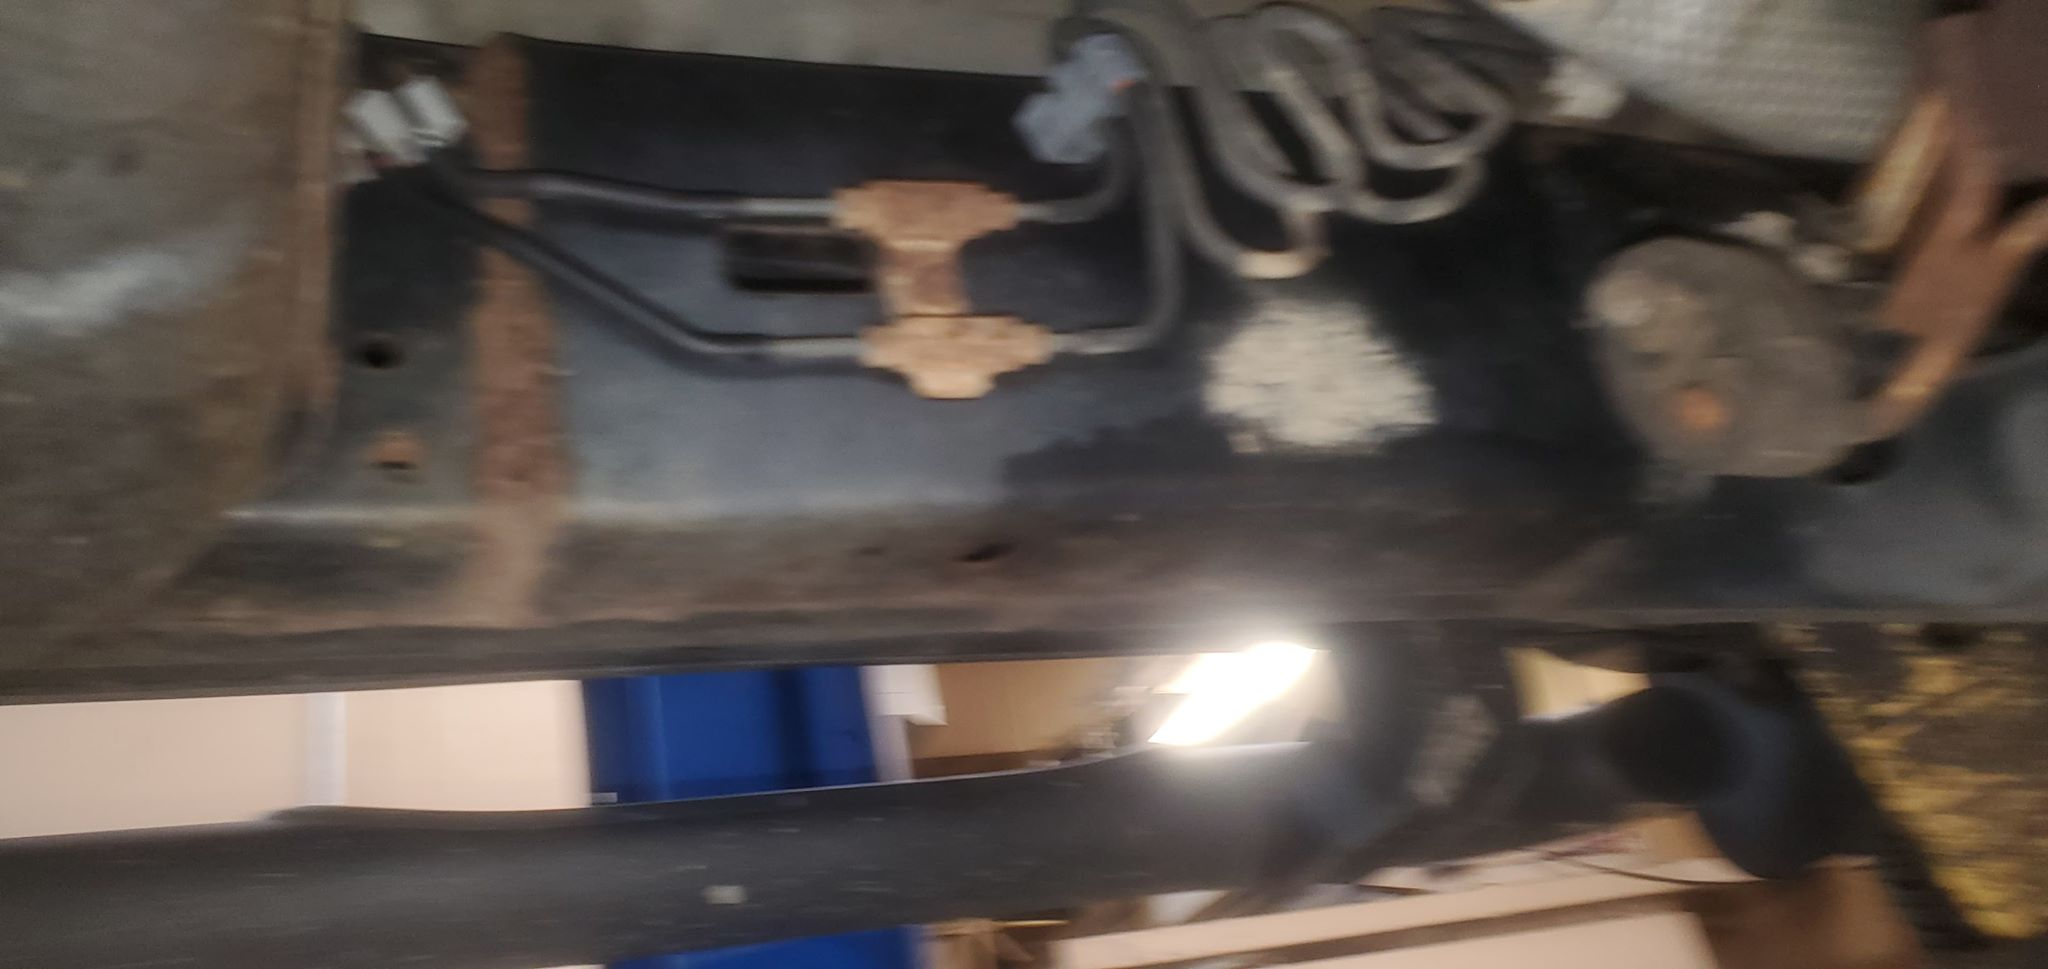 How much is too much rust on a 2006 4Runner?-81959012_524233204860891_4816259210566172672_n-jpg